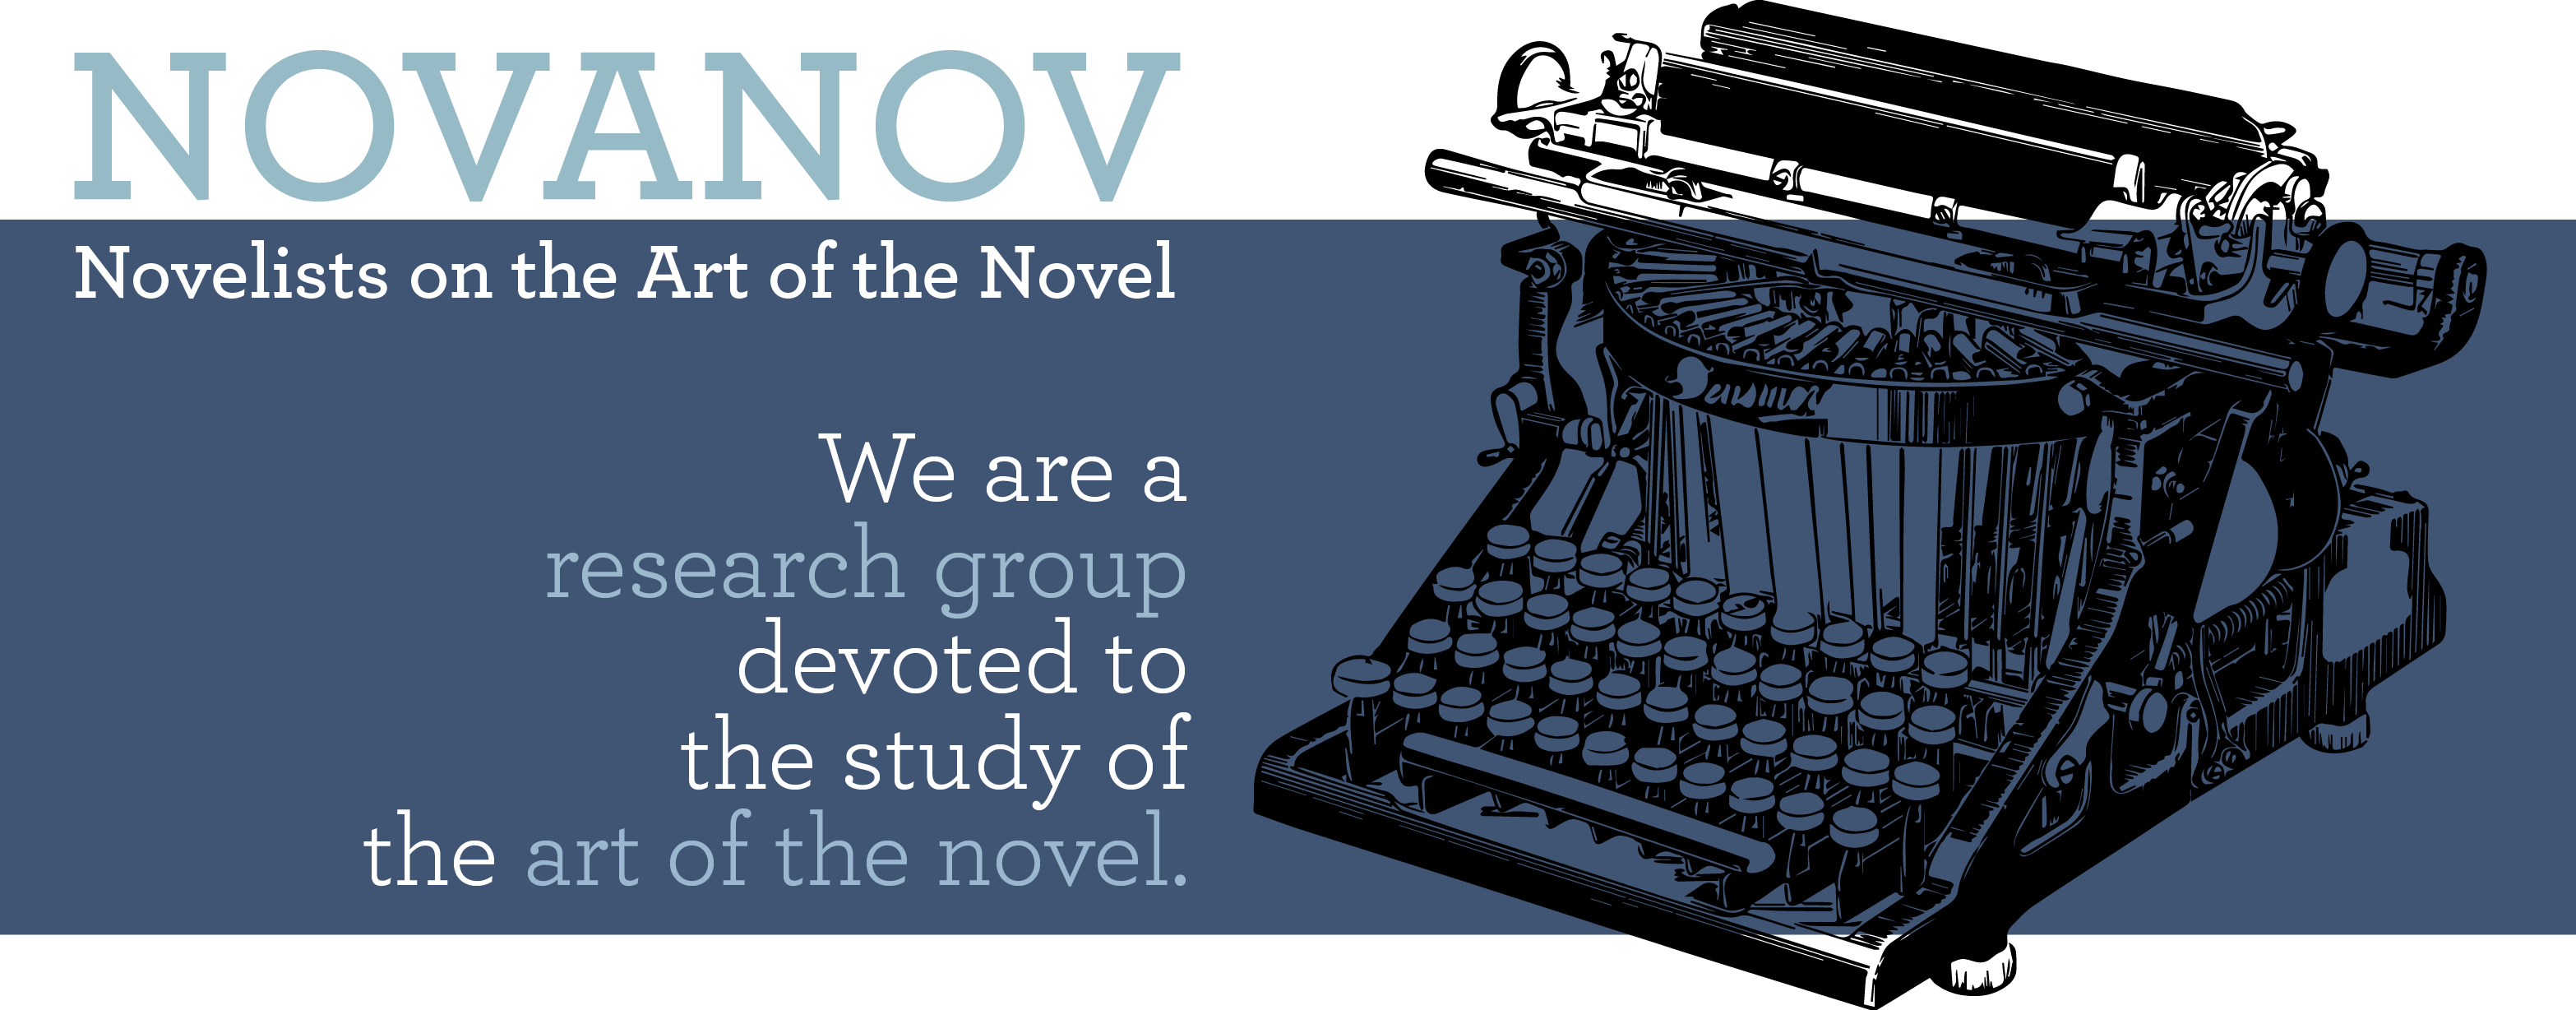 NOVANOV - Novelists on the Art of the Novel